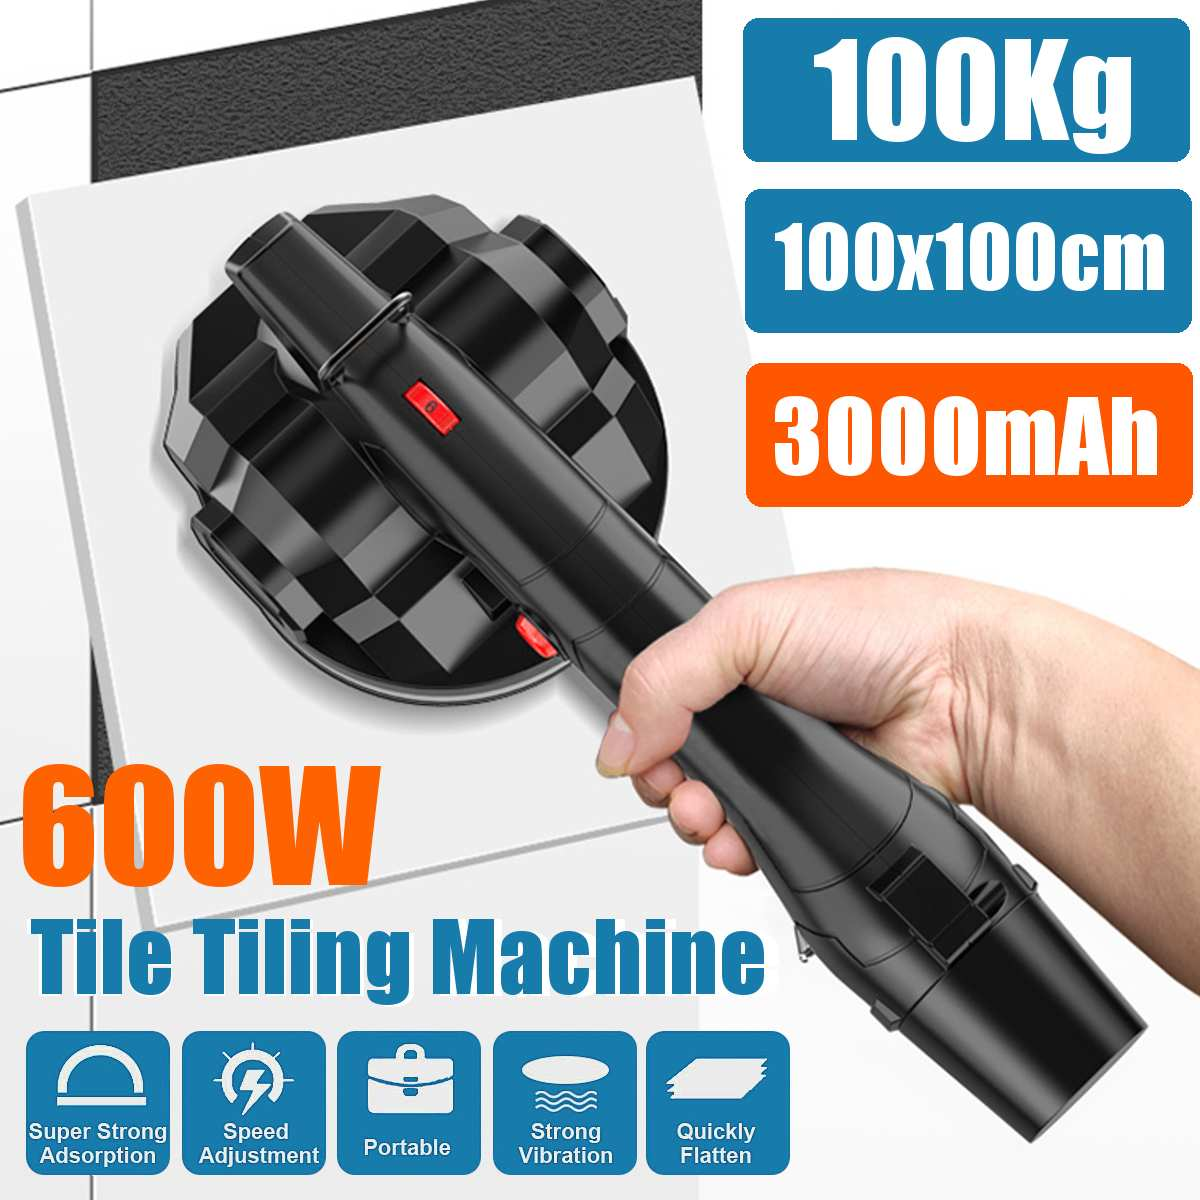 600W Vibrator For Tiles 100x100cm Tiling Plastering Machine Laying Tiles With 3000mAh Battery Automatic Floor Vibrator Leveling